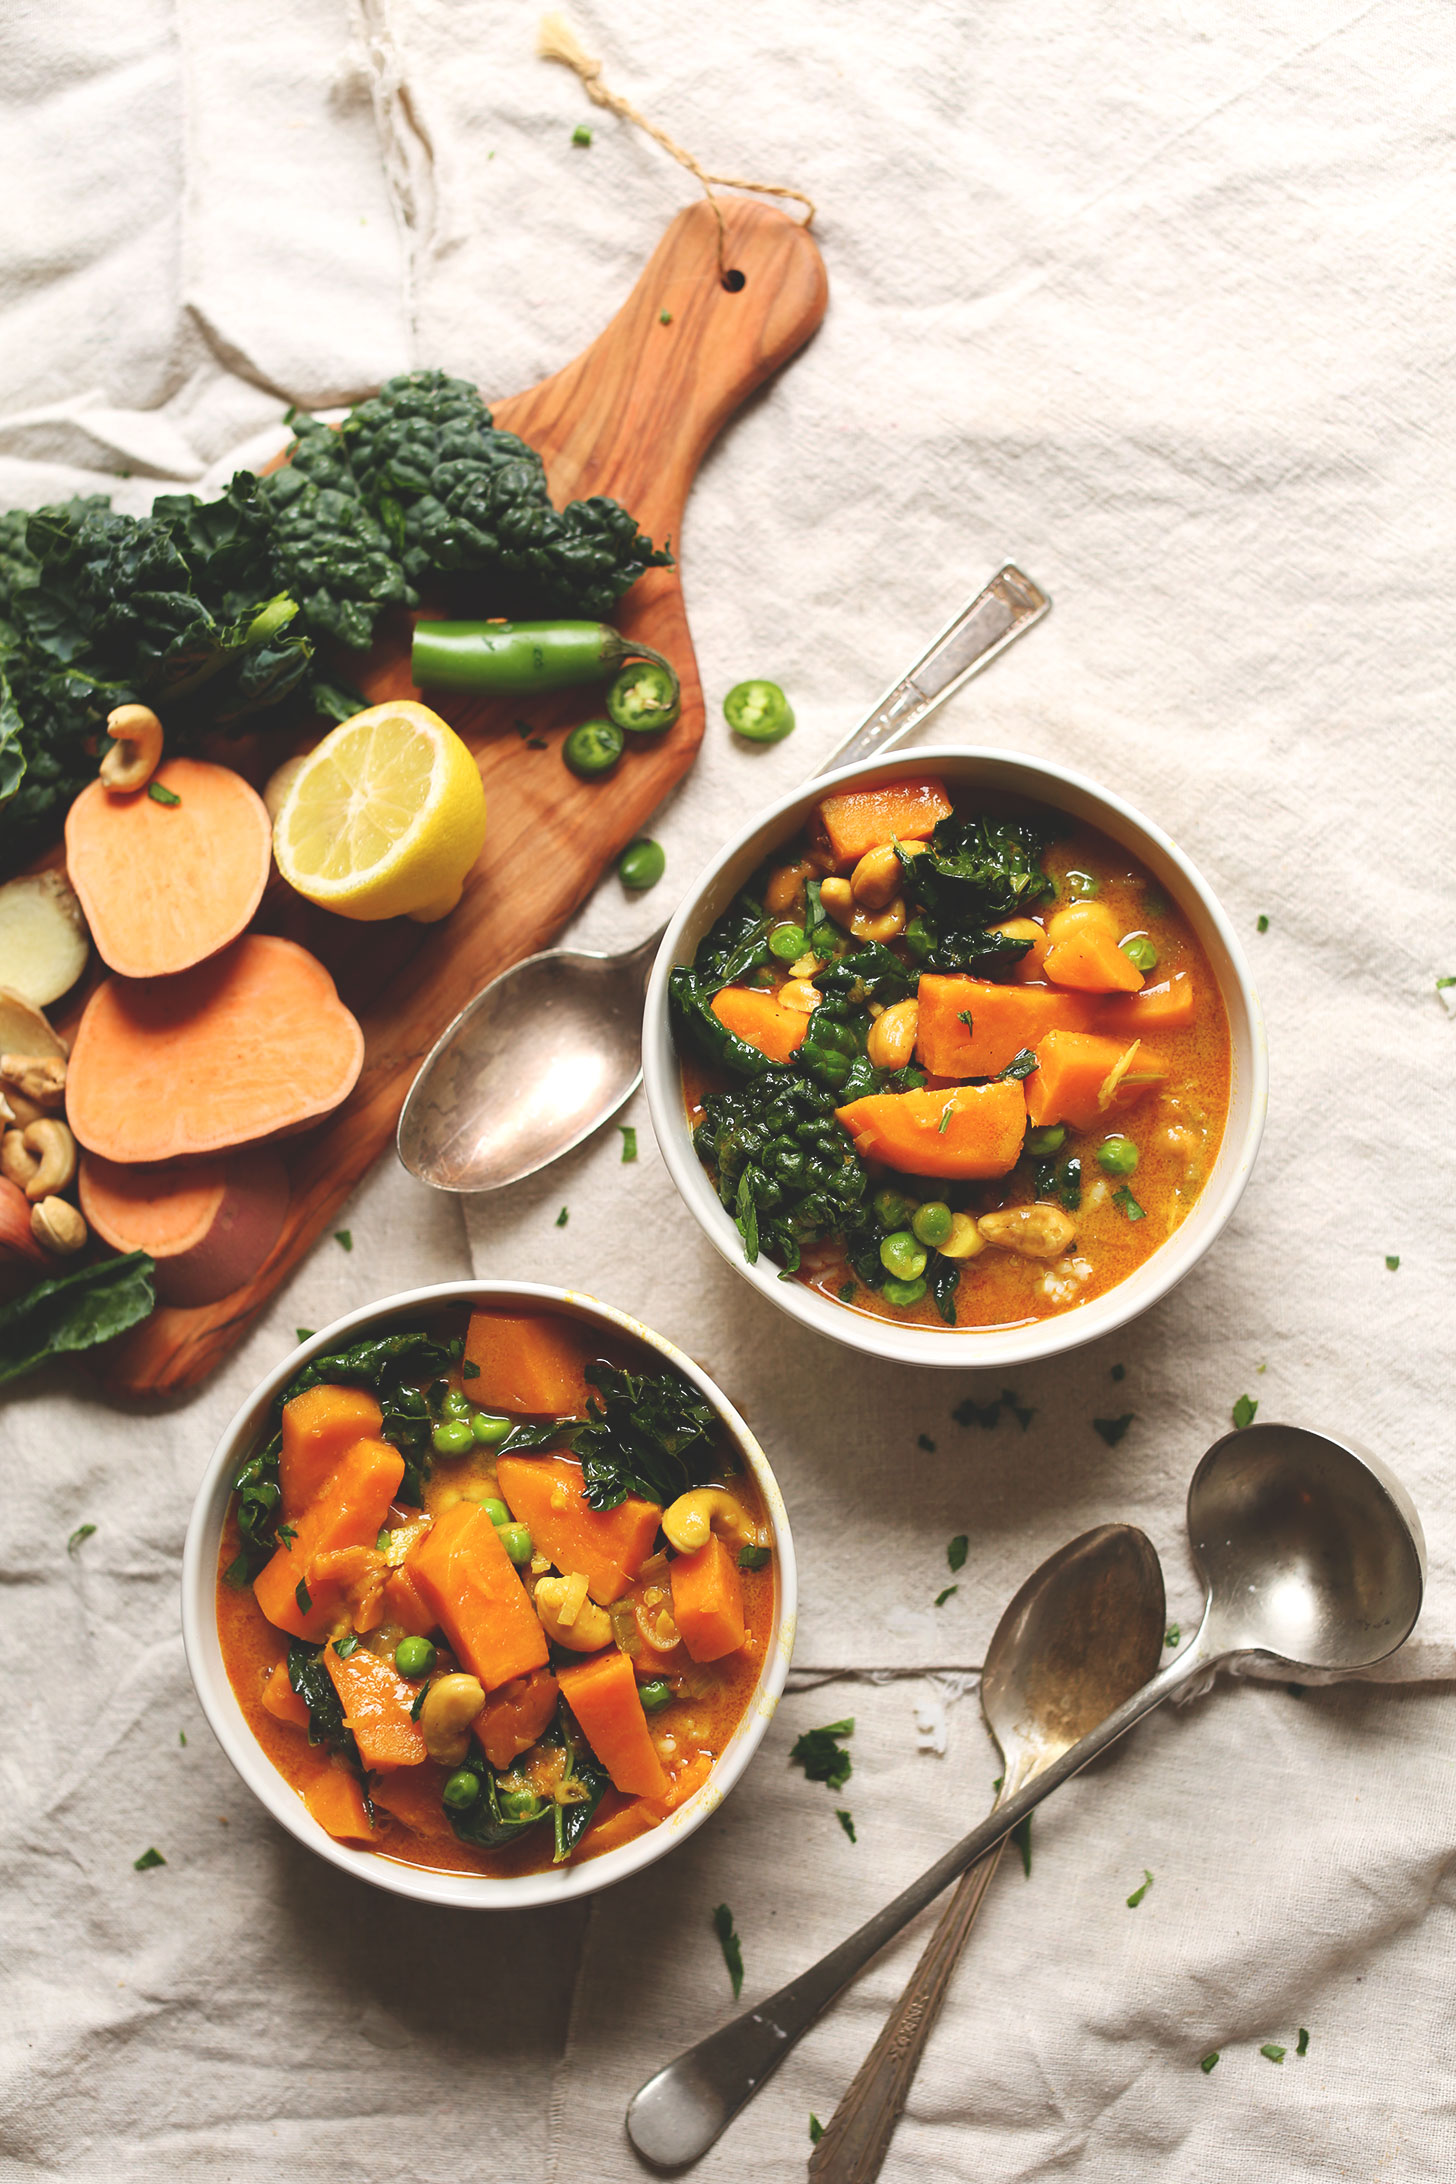 Two big bowls of our Sweet Potato Kale Curry recipe alongside ingredients used to make it